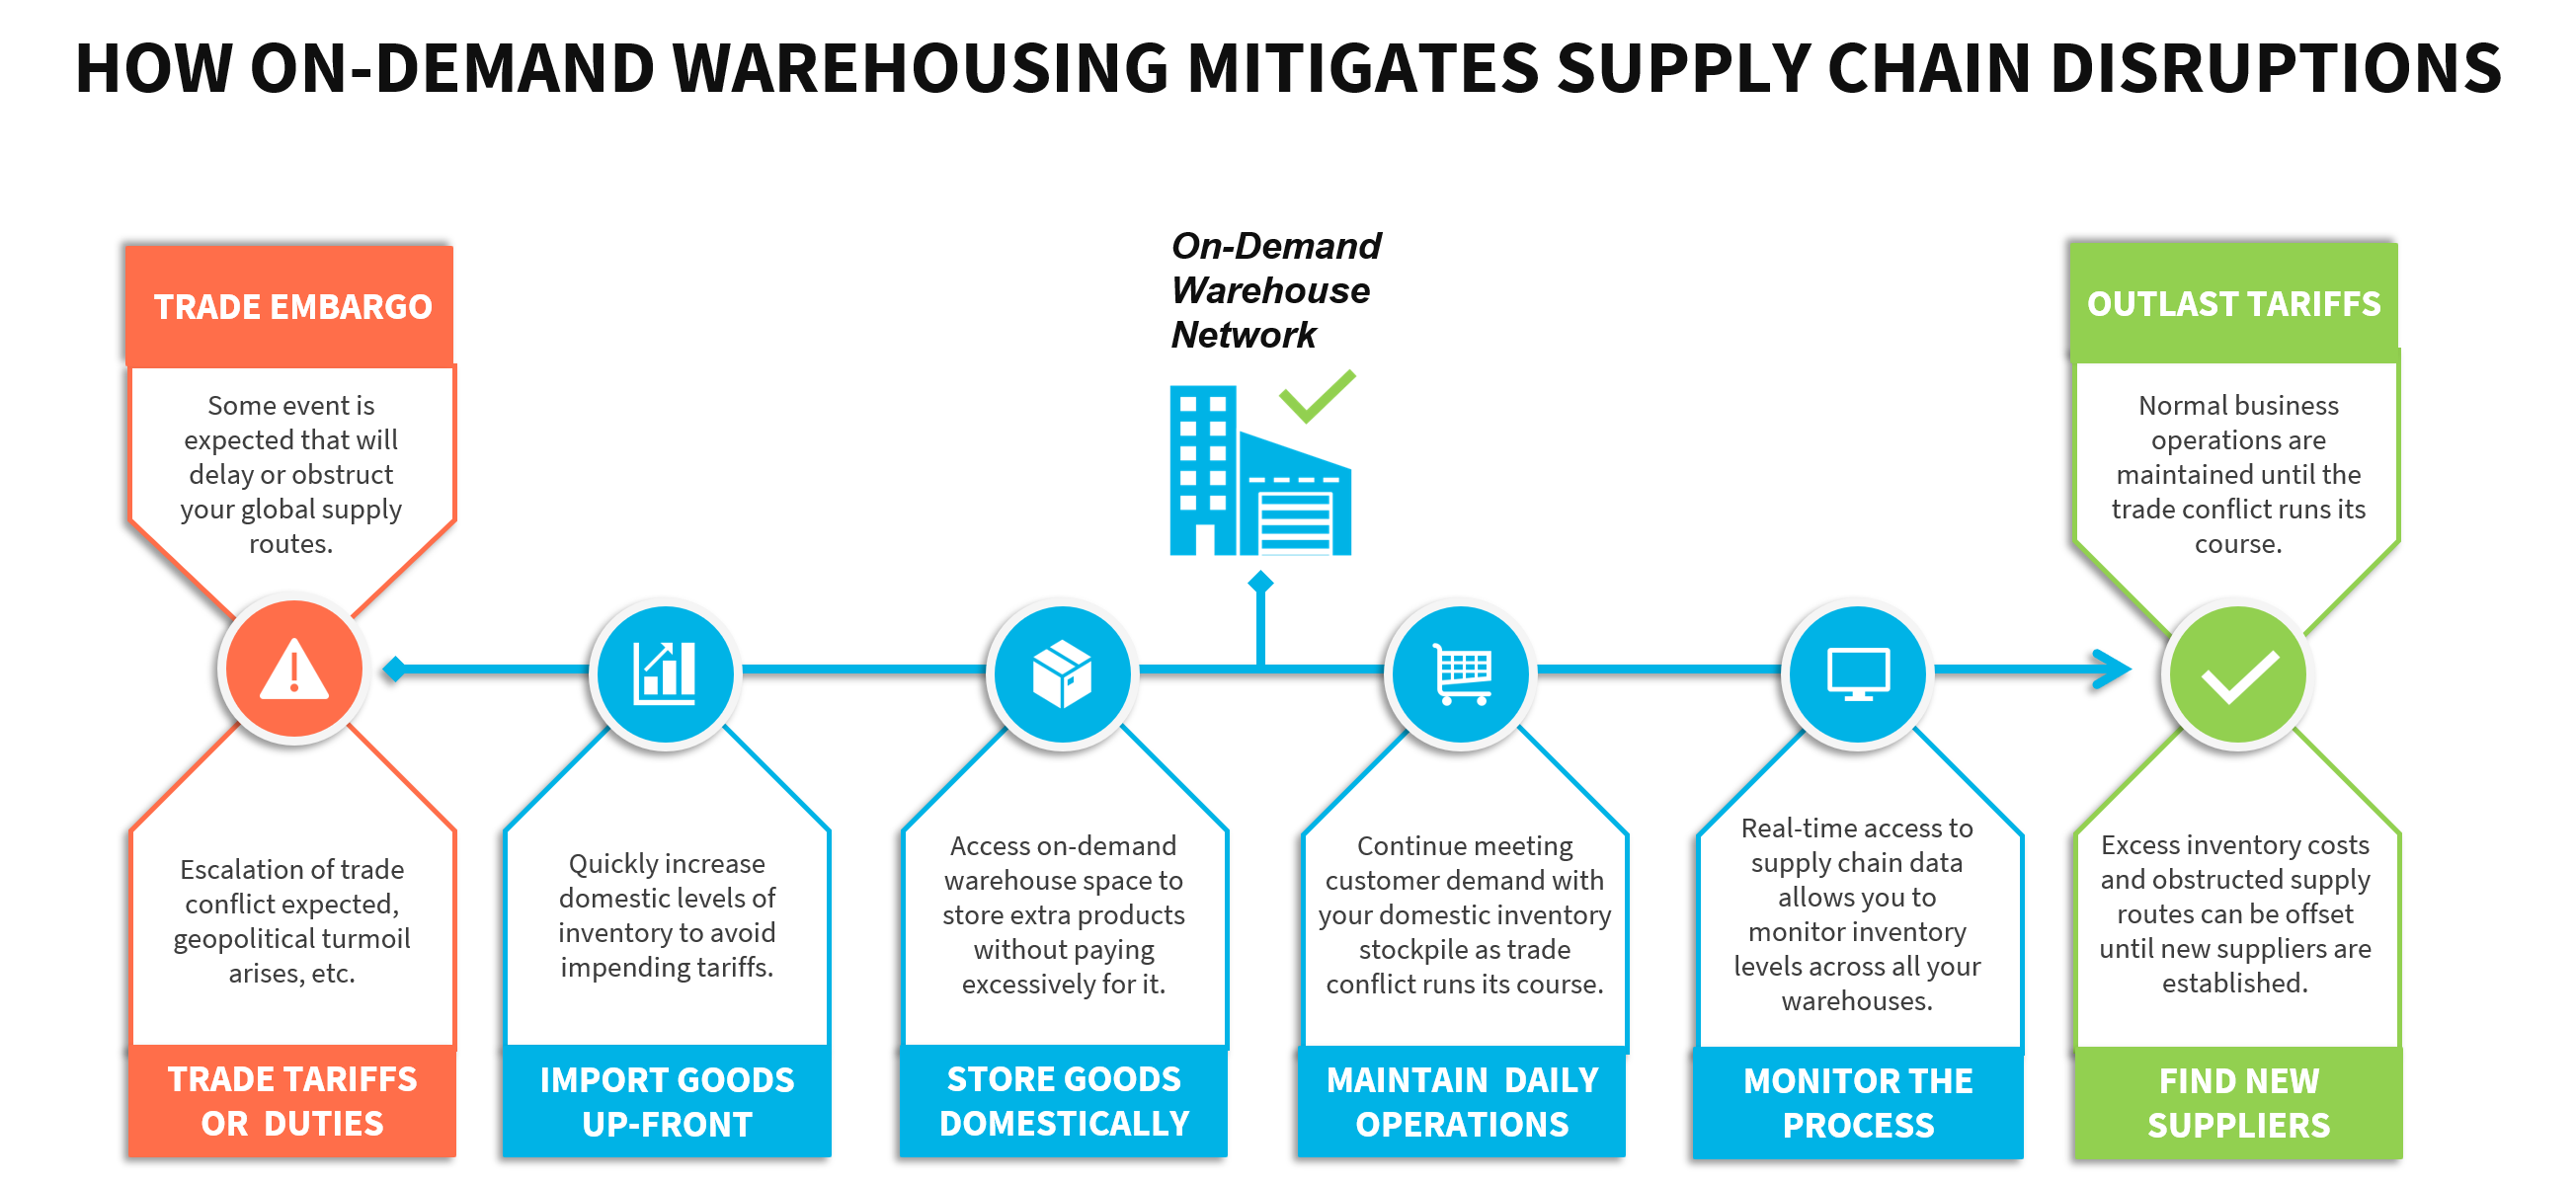 A workflow that demonstrates how on-demand warehousing is used to solve supply chain disruptions arising from trade conflict